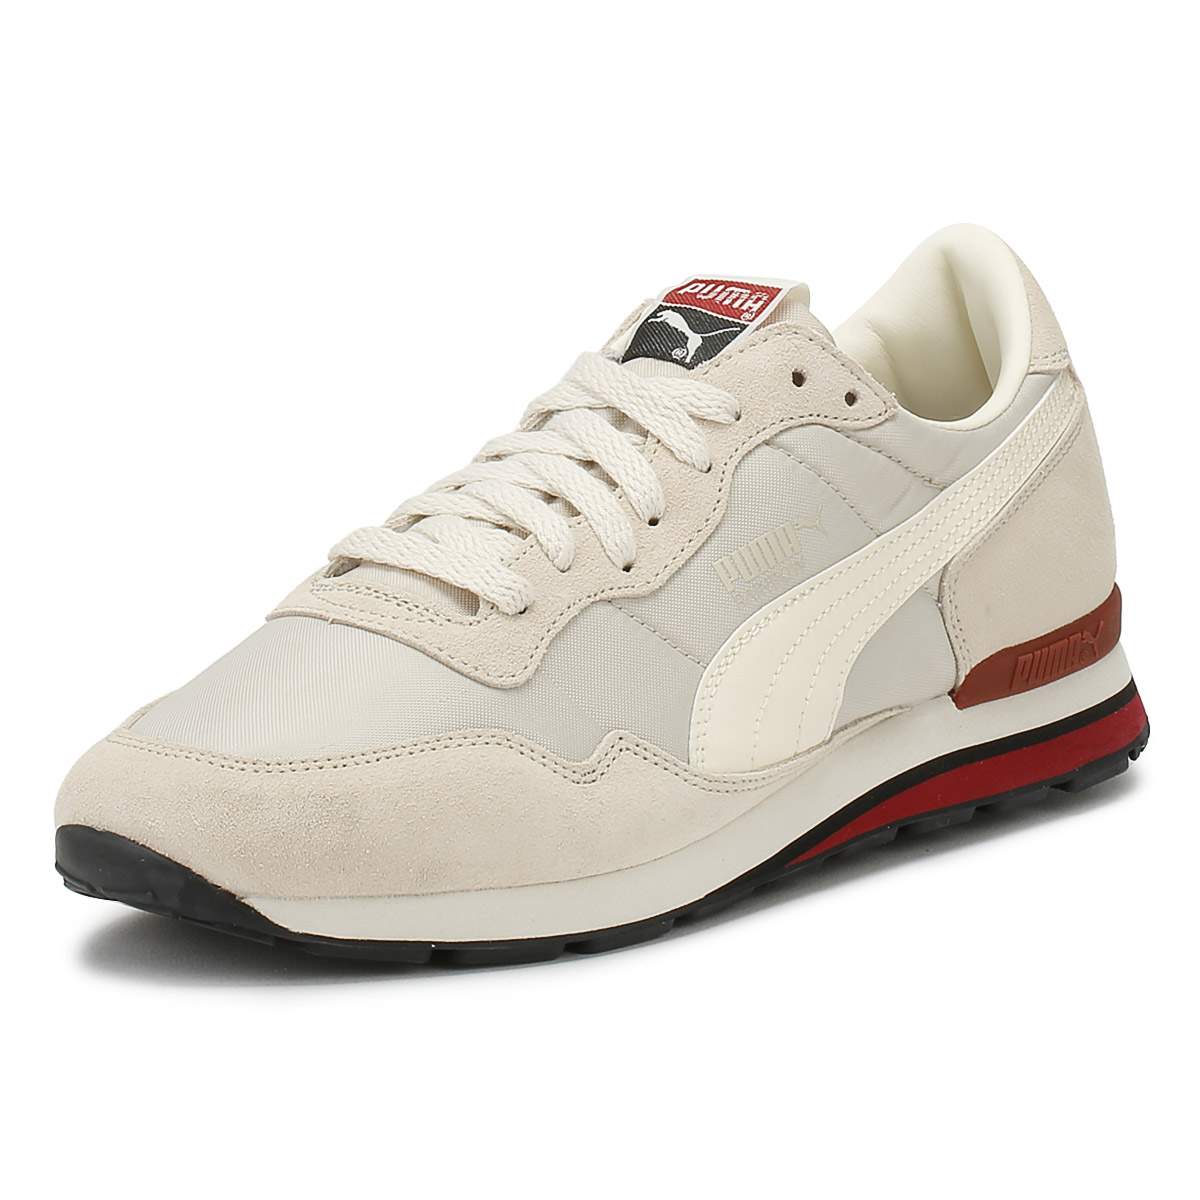 PUMA Mens SC Trainers Birch & Red Rainbow Lace Up Sport Casual Shoes